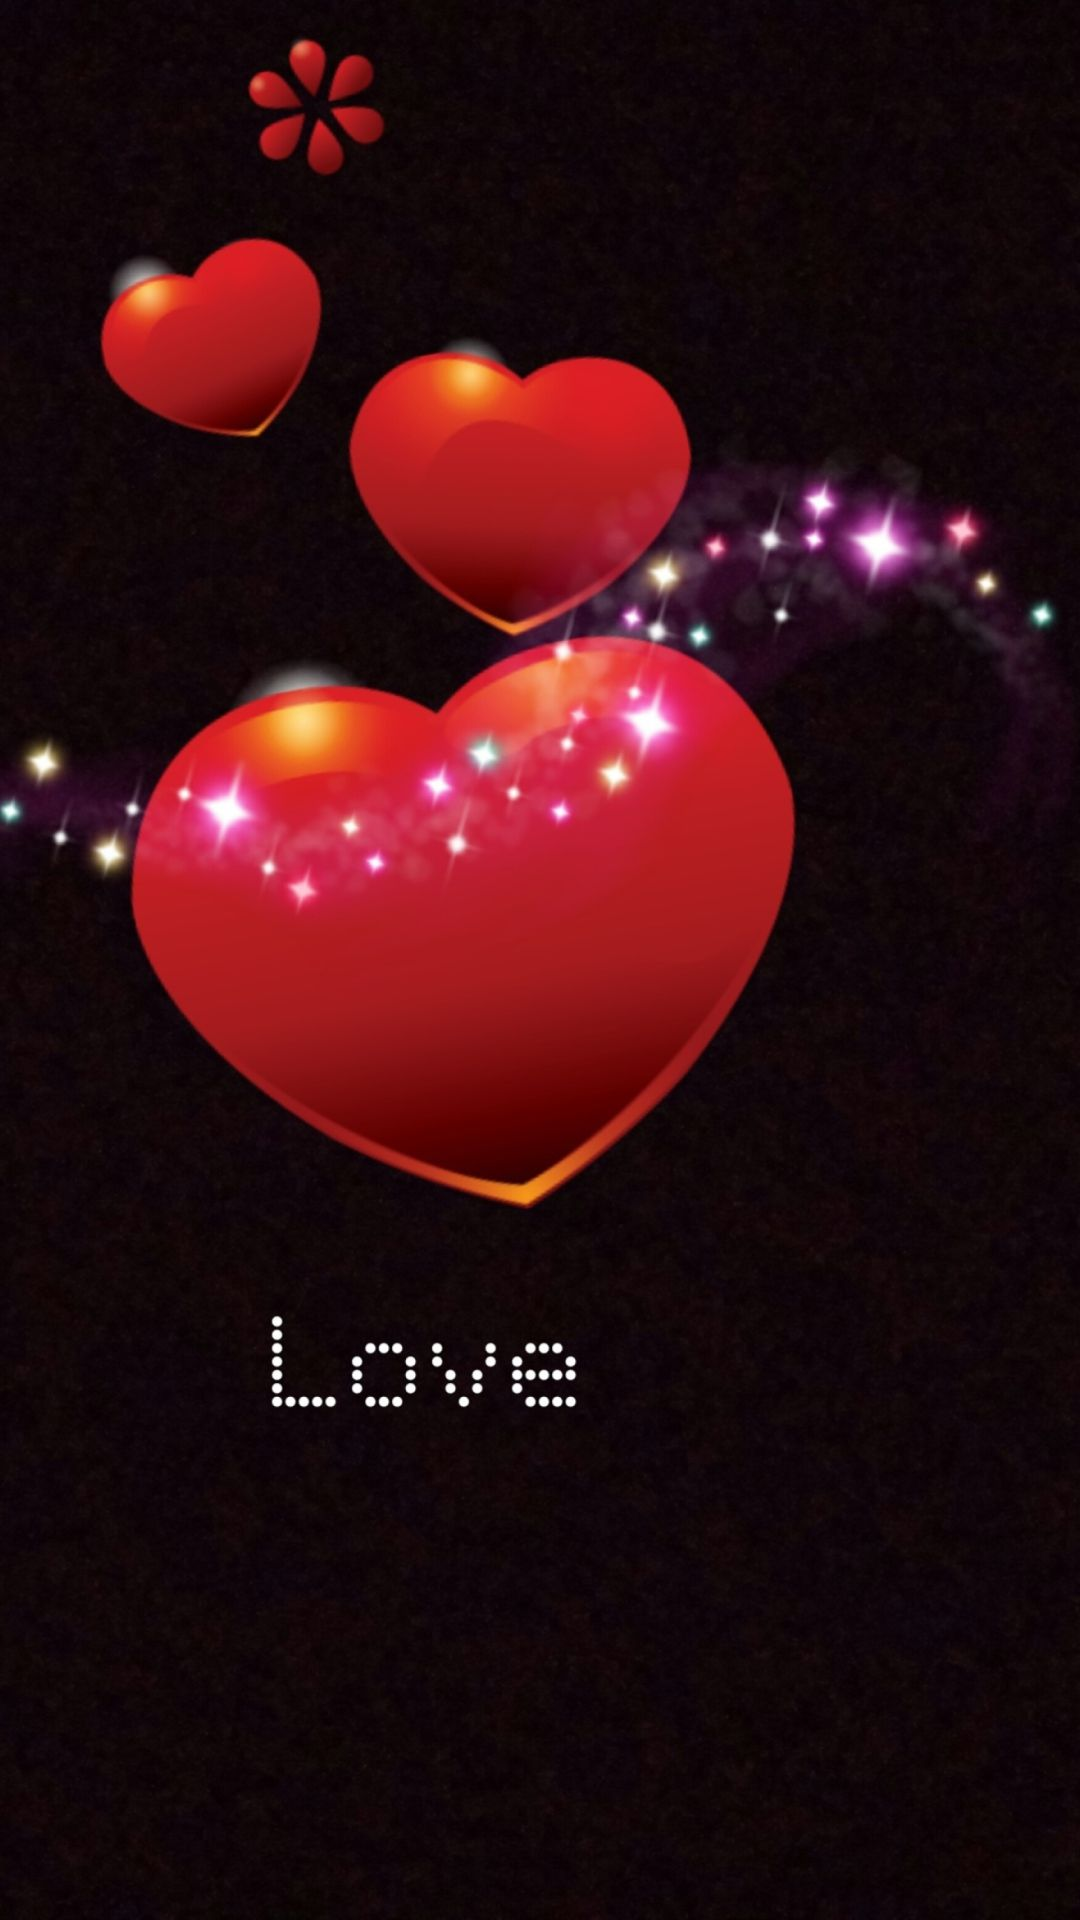 Heart Iphone Wallpapers Top Free Heart Iphone Backgrounds